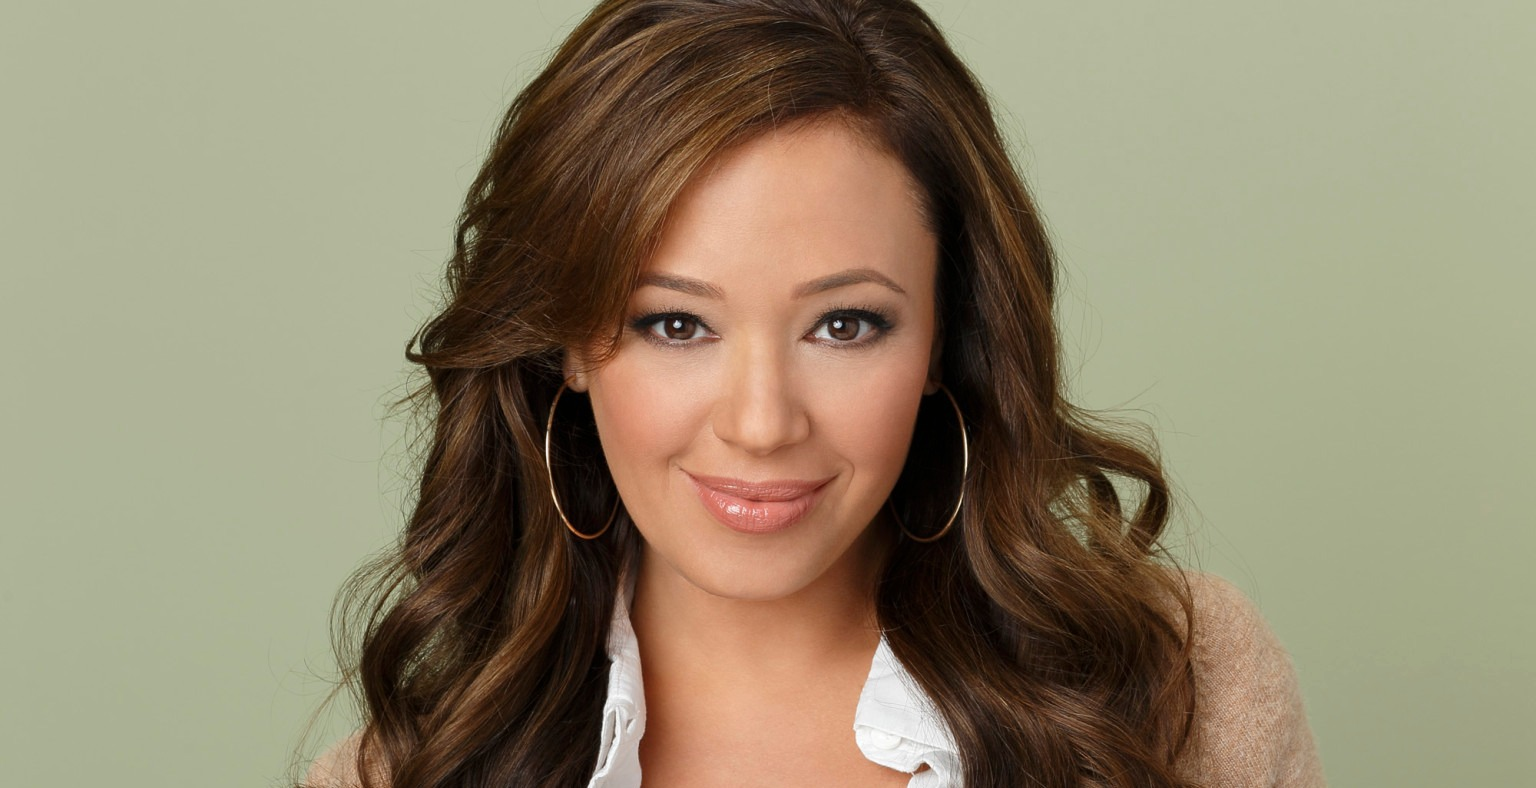 Naked Pictures Of Leah Remini 26